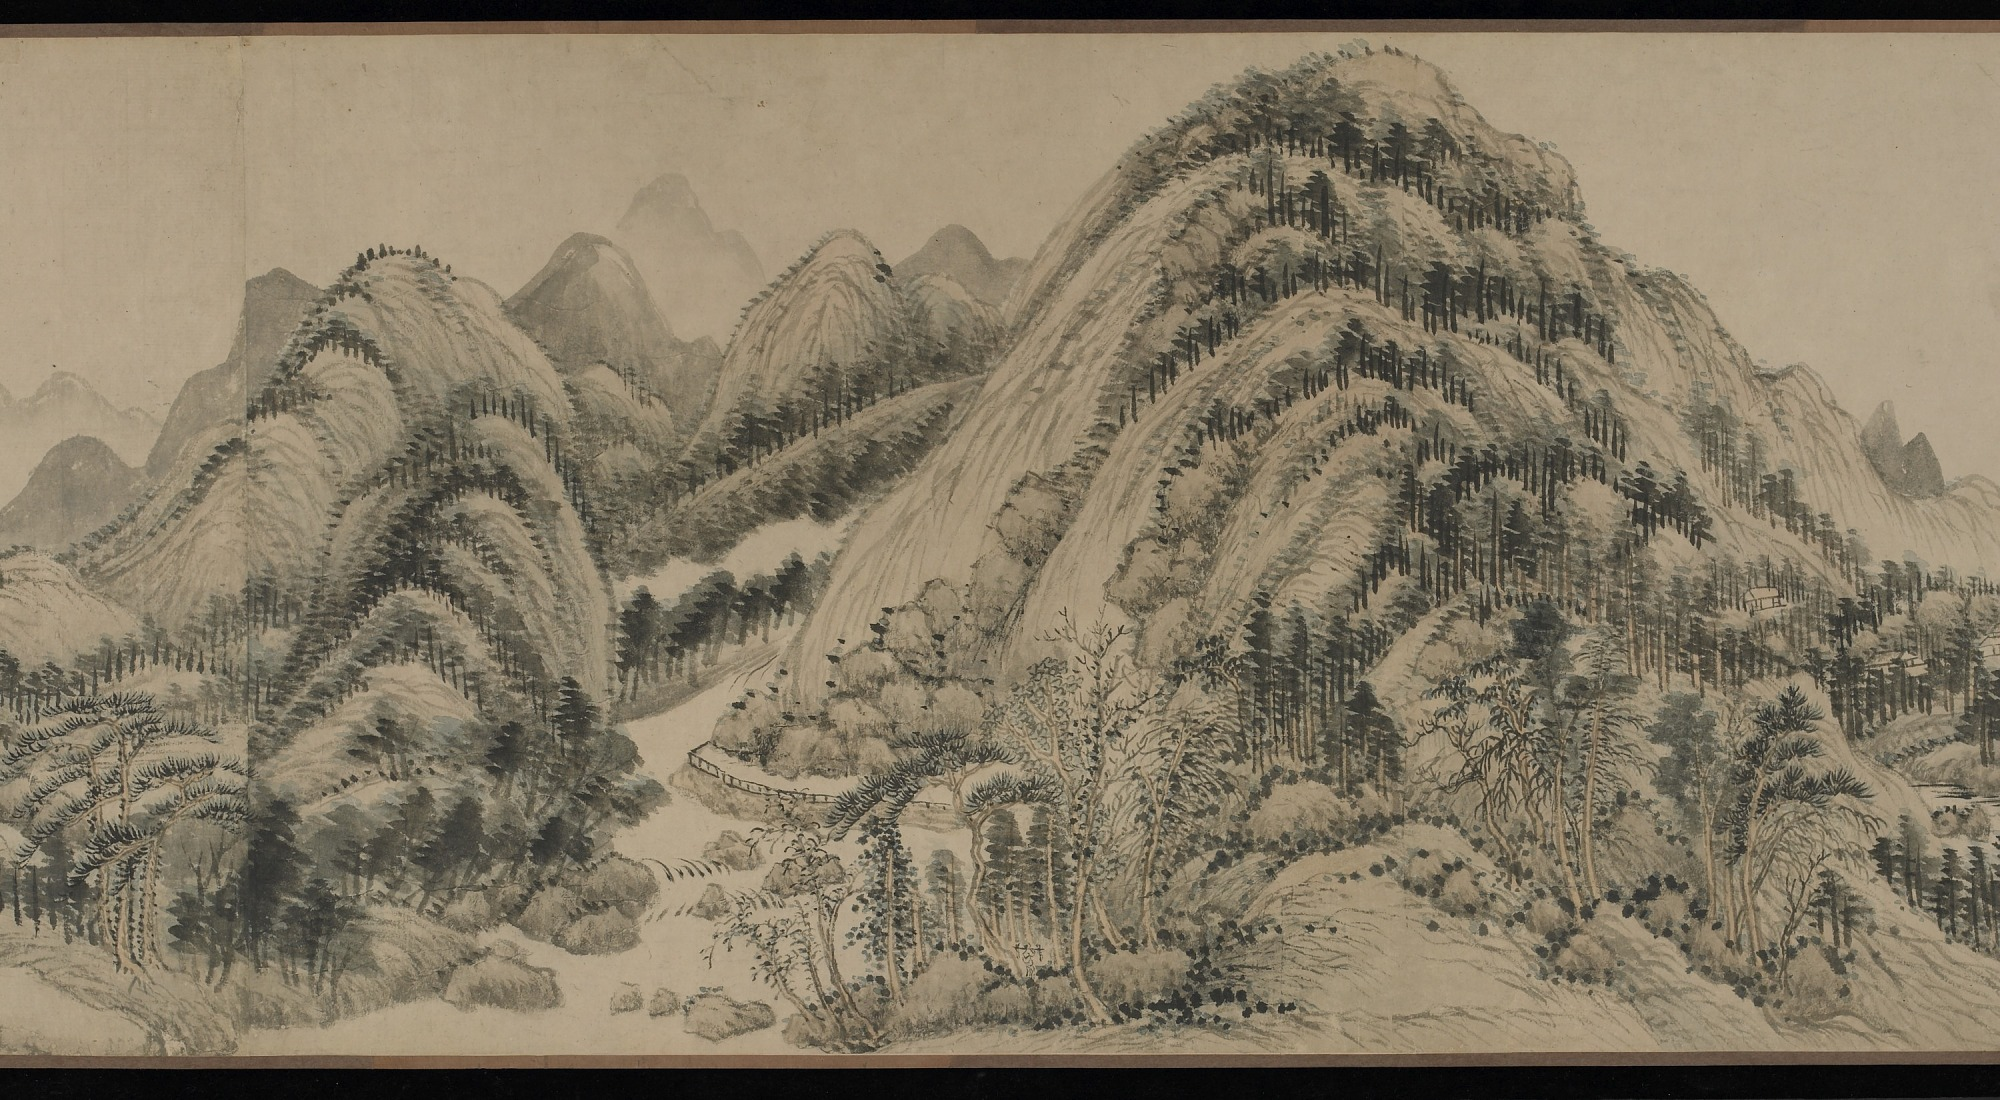 section 5: Dwelling in the Fuchun Mountains after Huang Gongwang